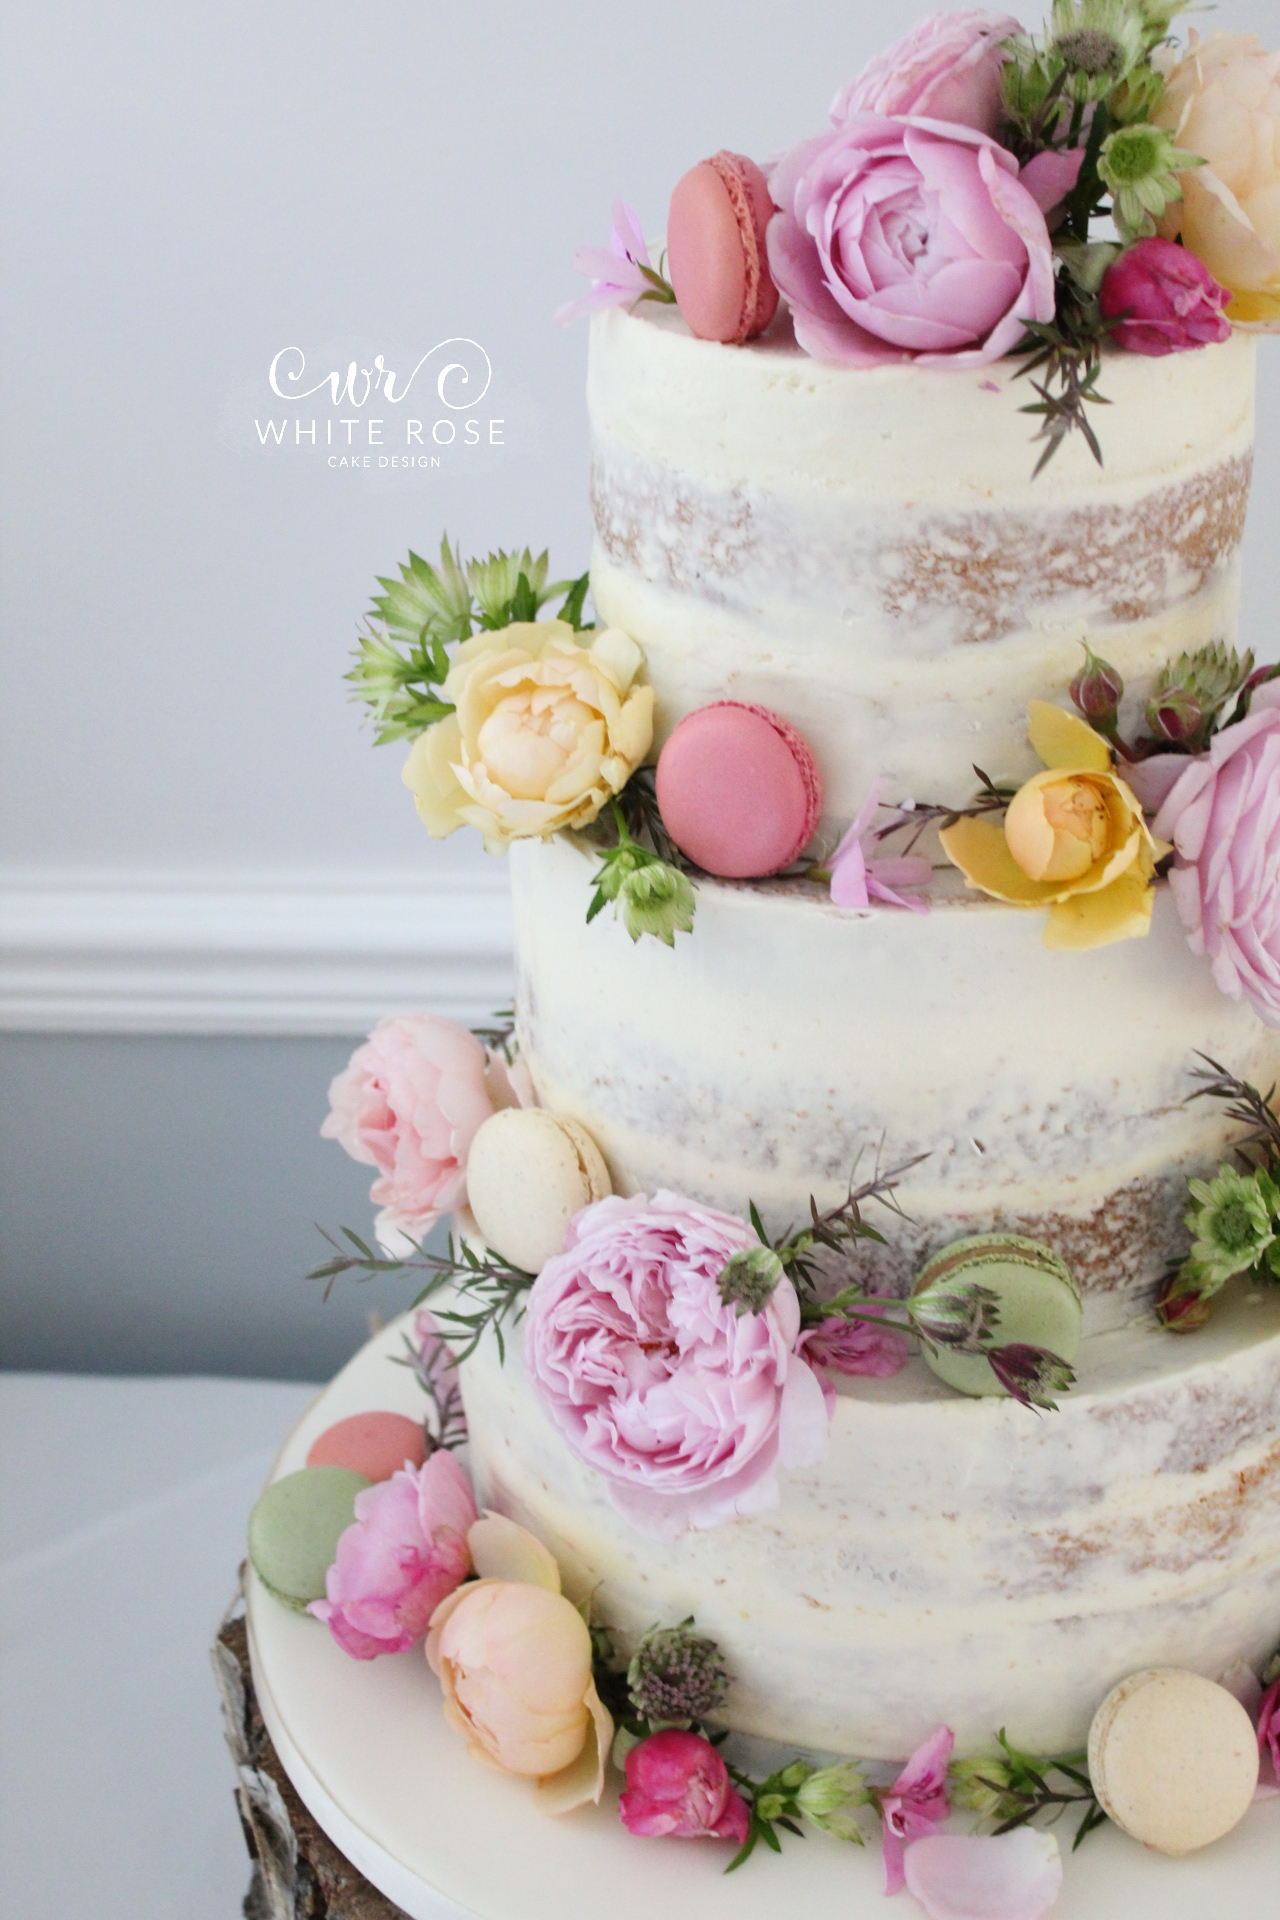 Floral Semi-Naked Wedding Cake with Fresh Flowers in Bright Colours at Durker Roods Hotel by White Rose Cake Design Wedding Cake Designer in Huddersfield Holmfirth West Yorkshire (3)